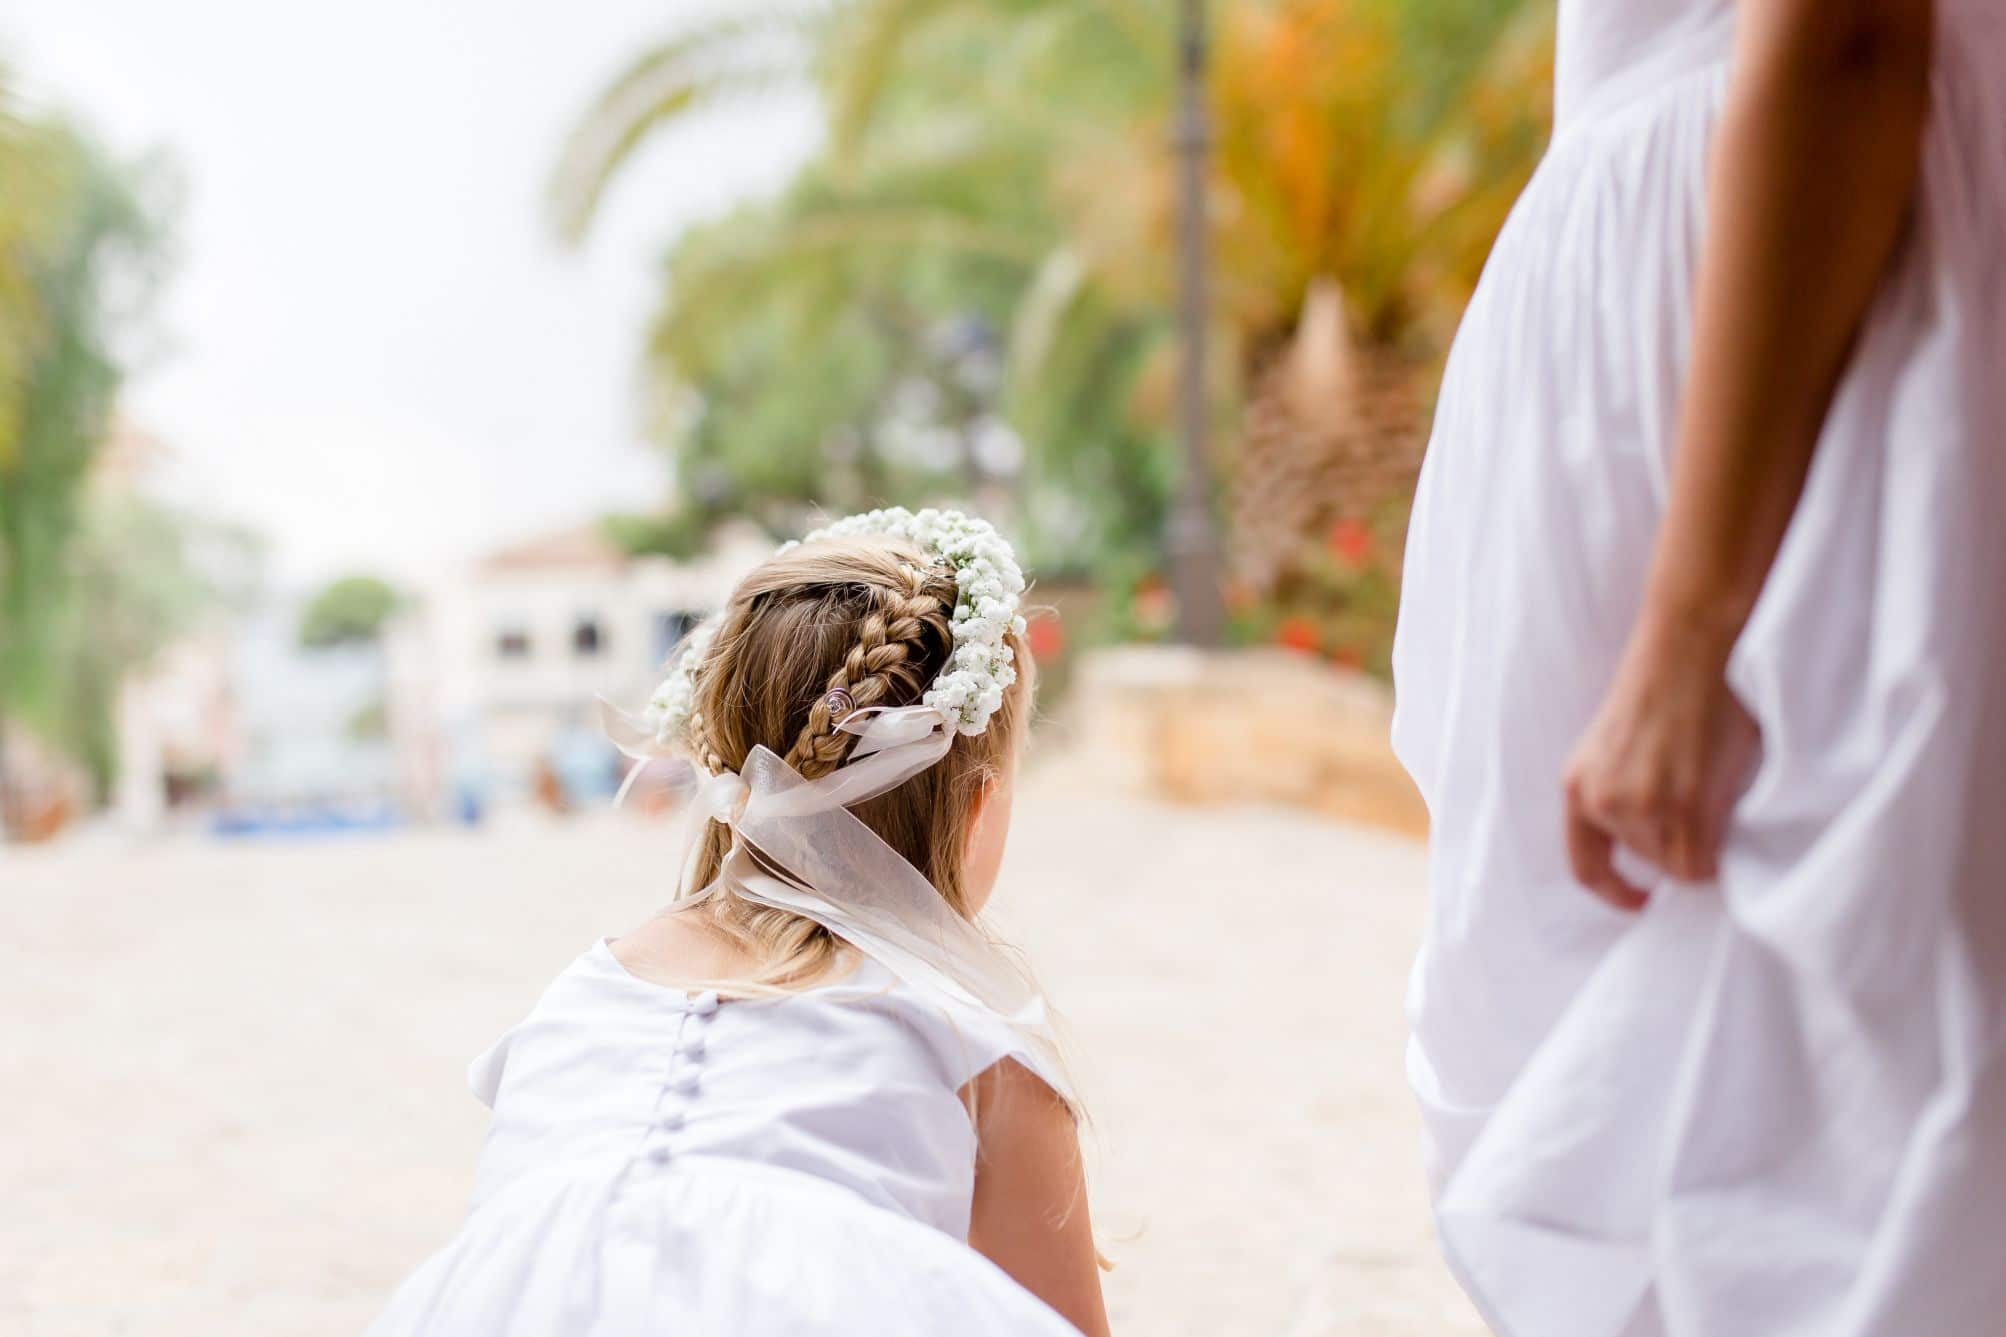 Million Memories_S&J_Hochzeitsfotograf_Mallorca_Spain_Wedding_Spanien Hochzeit_Balearen_Balearic islands_053